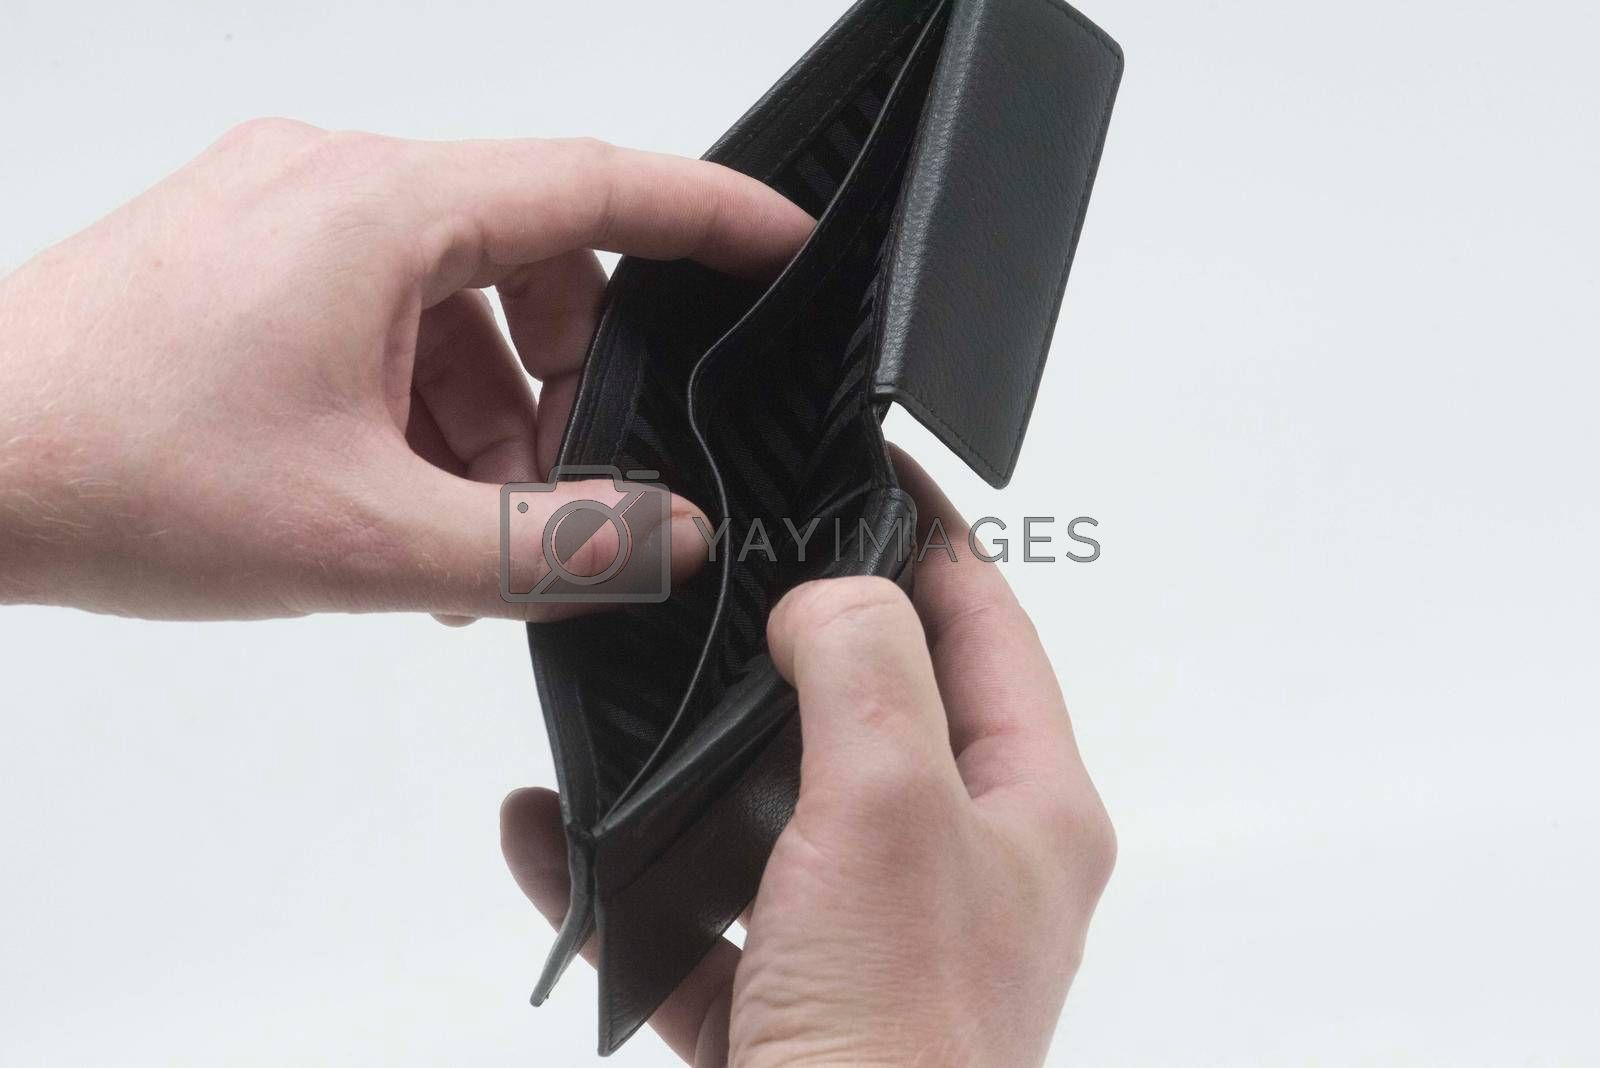 wallet and cash money in economic difficult times and economic recession